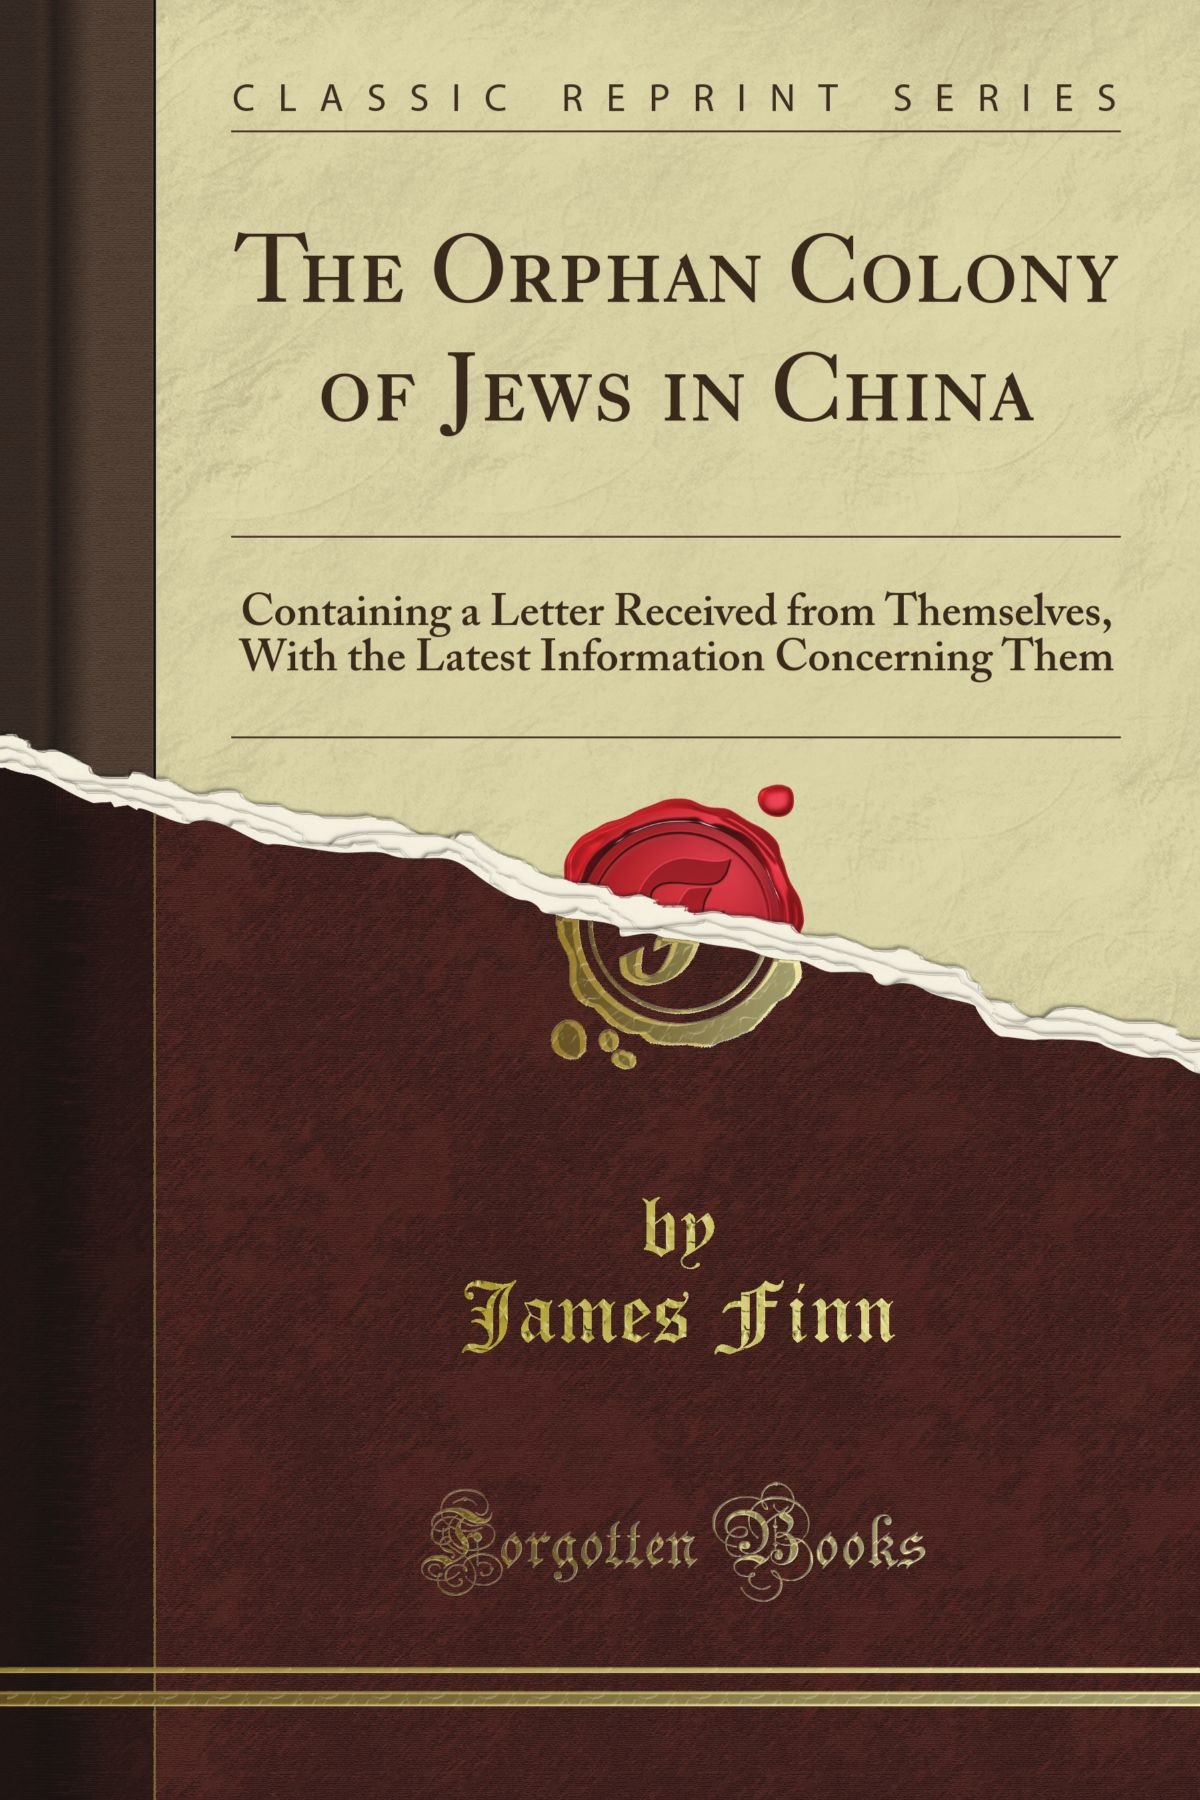 The Orphan Colony of Jews in China: Containing a Letter Received from Themselves, With the Latest Information Concerning Them (Classic Reprint) pdf